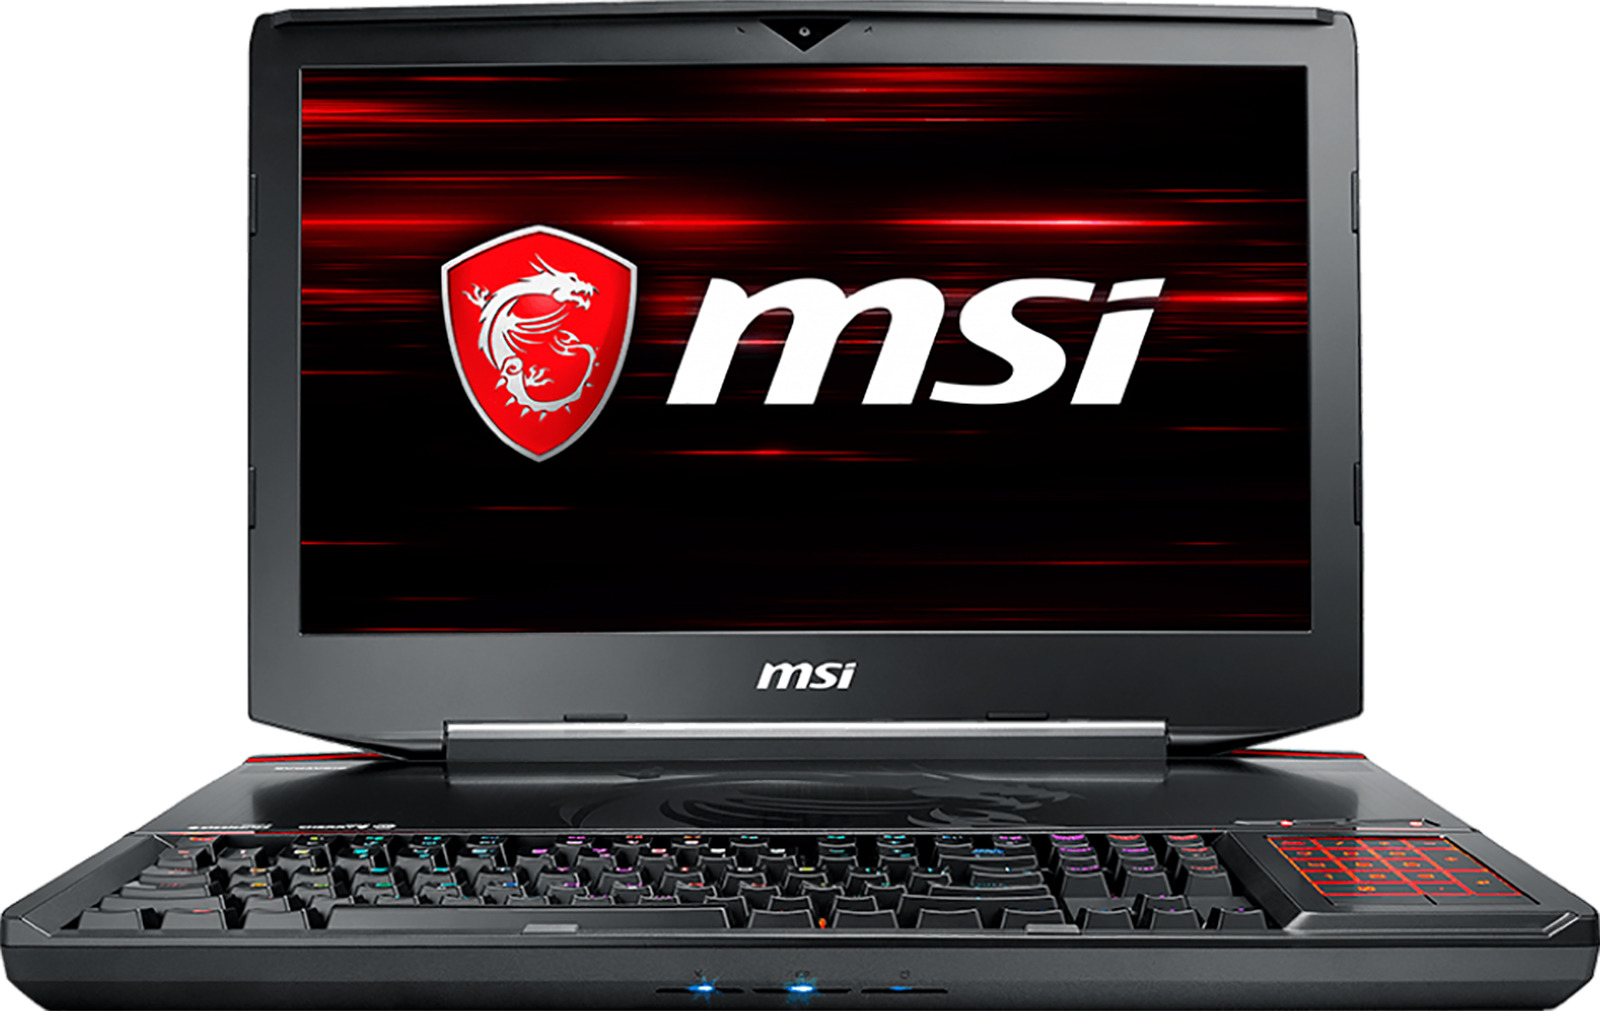 Игровой ноутбук MSI GT83 Titan 8RF 9S7-181612-006, черный ноутбук msi gt83 8rg 005ru titan intel core i7 8850h 2600 mhz 18 4 1920х1080 32768mb 512gb hdd blu ray nvidia geforce gtx 1080 х 2 wifi windows 10 home